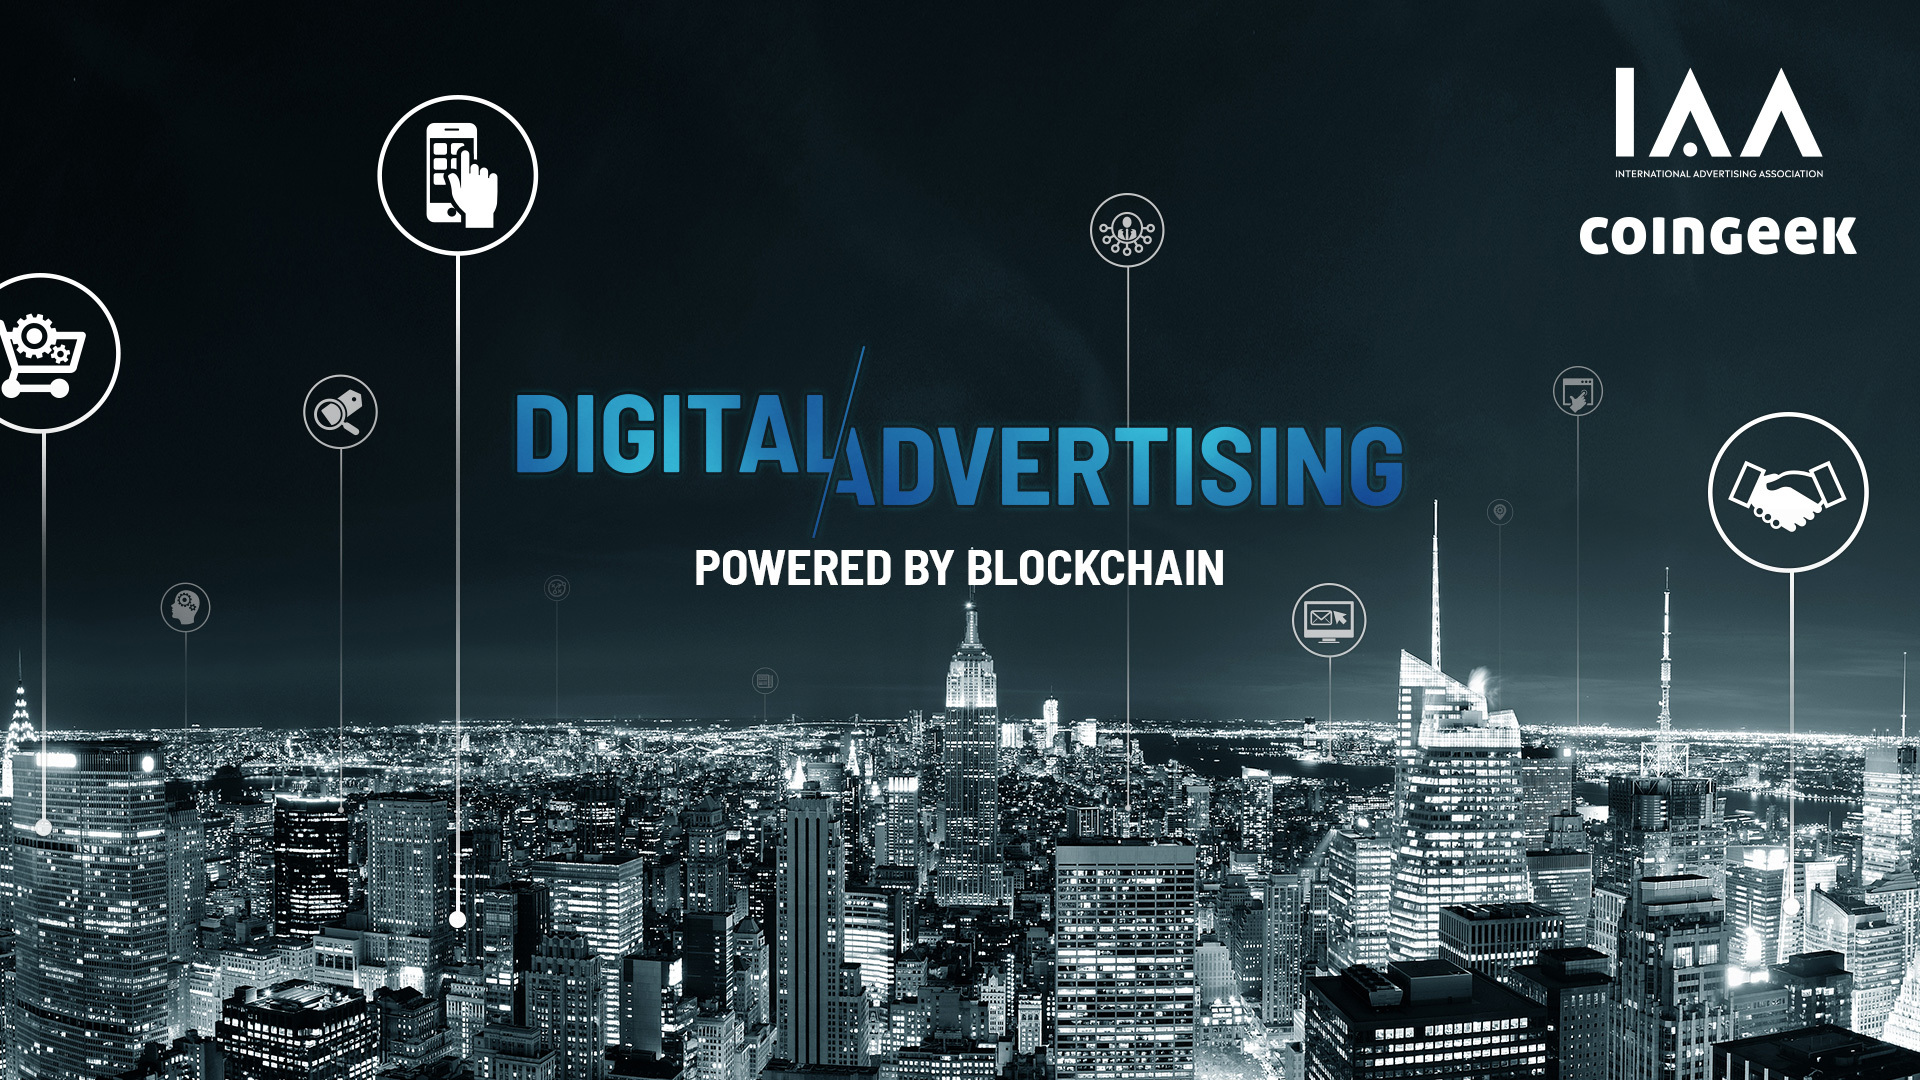 Digital Advertising Revolution is coming, and it's powered by Blockchain